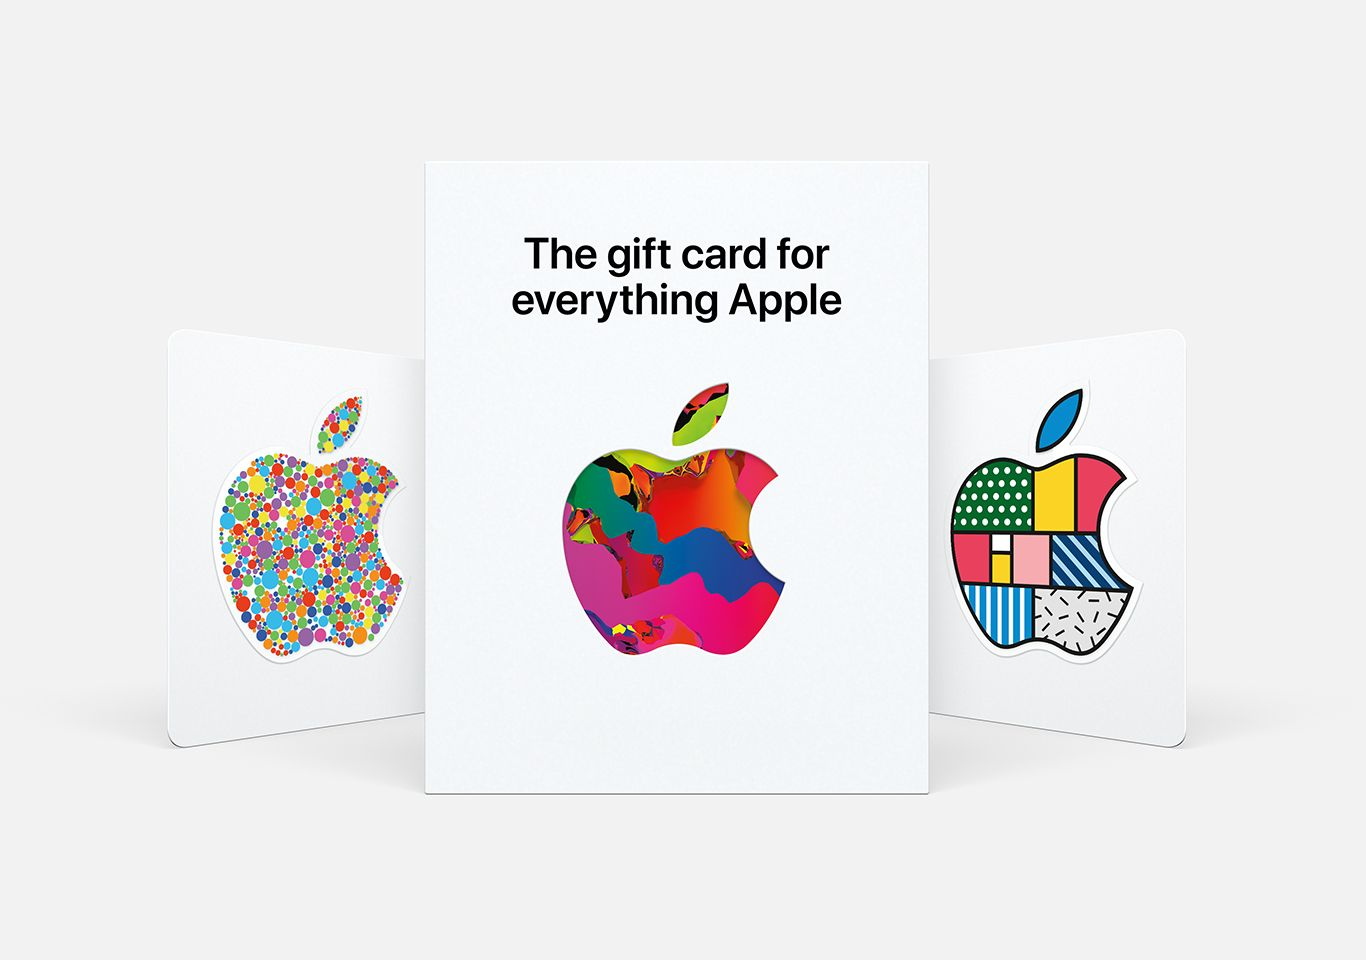 The gift card for everything Apple